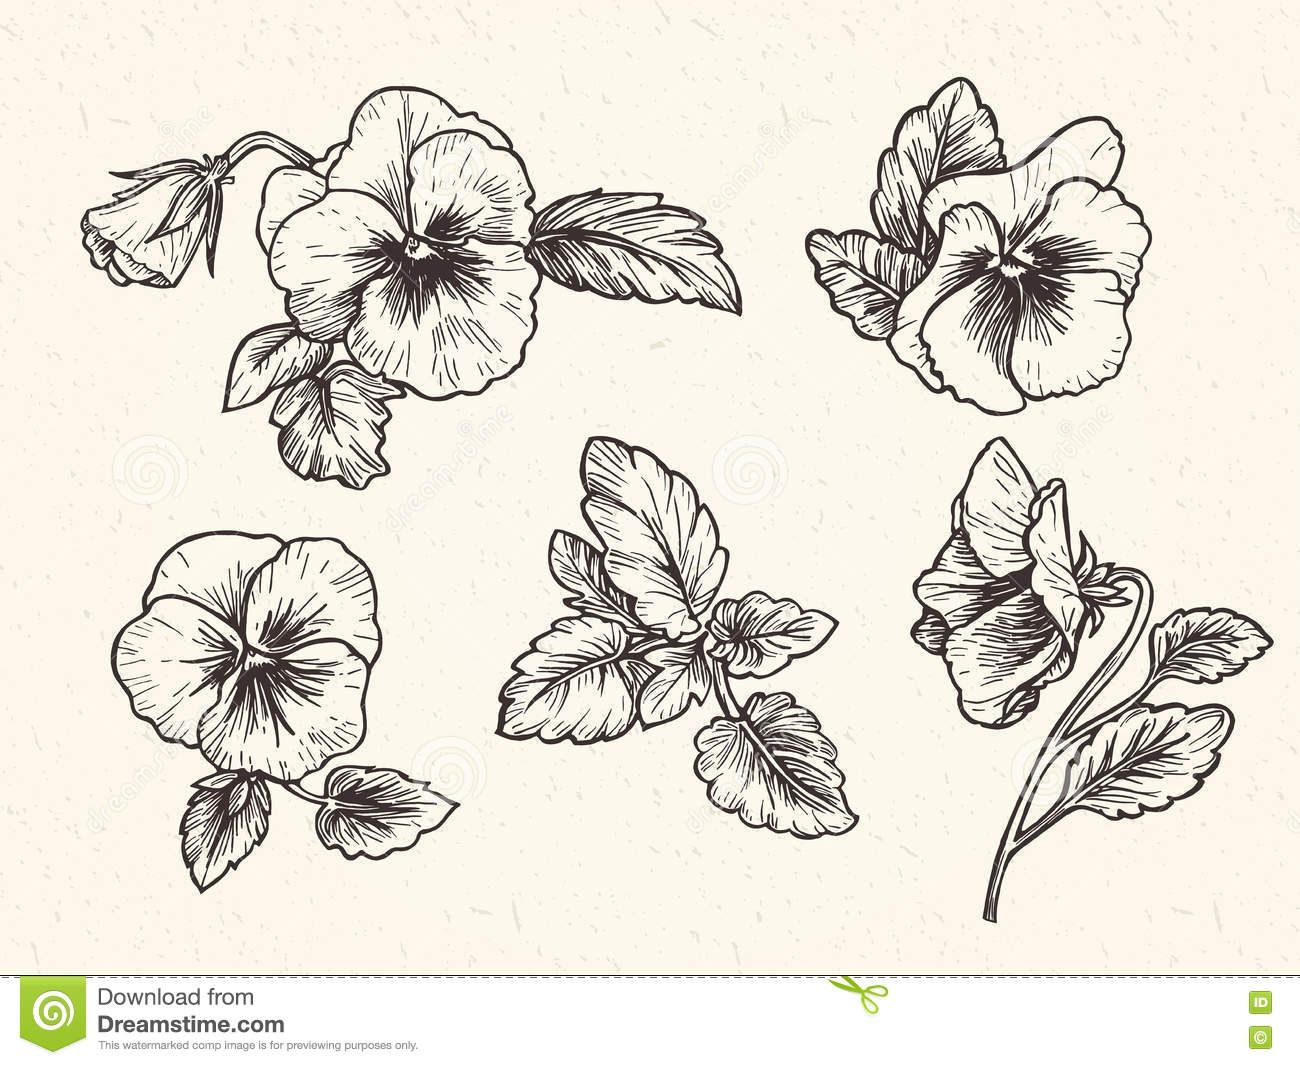 Hand Drawn Pansy Flowers Stock Vector Illustration Of Botanical 74631615 With Images Pansies Flowers Violet Flower Tattoos Pansy Tattoo